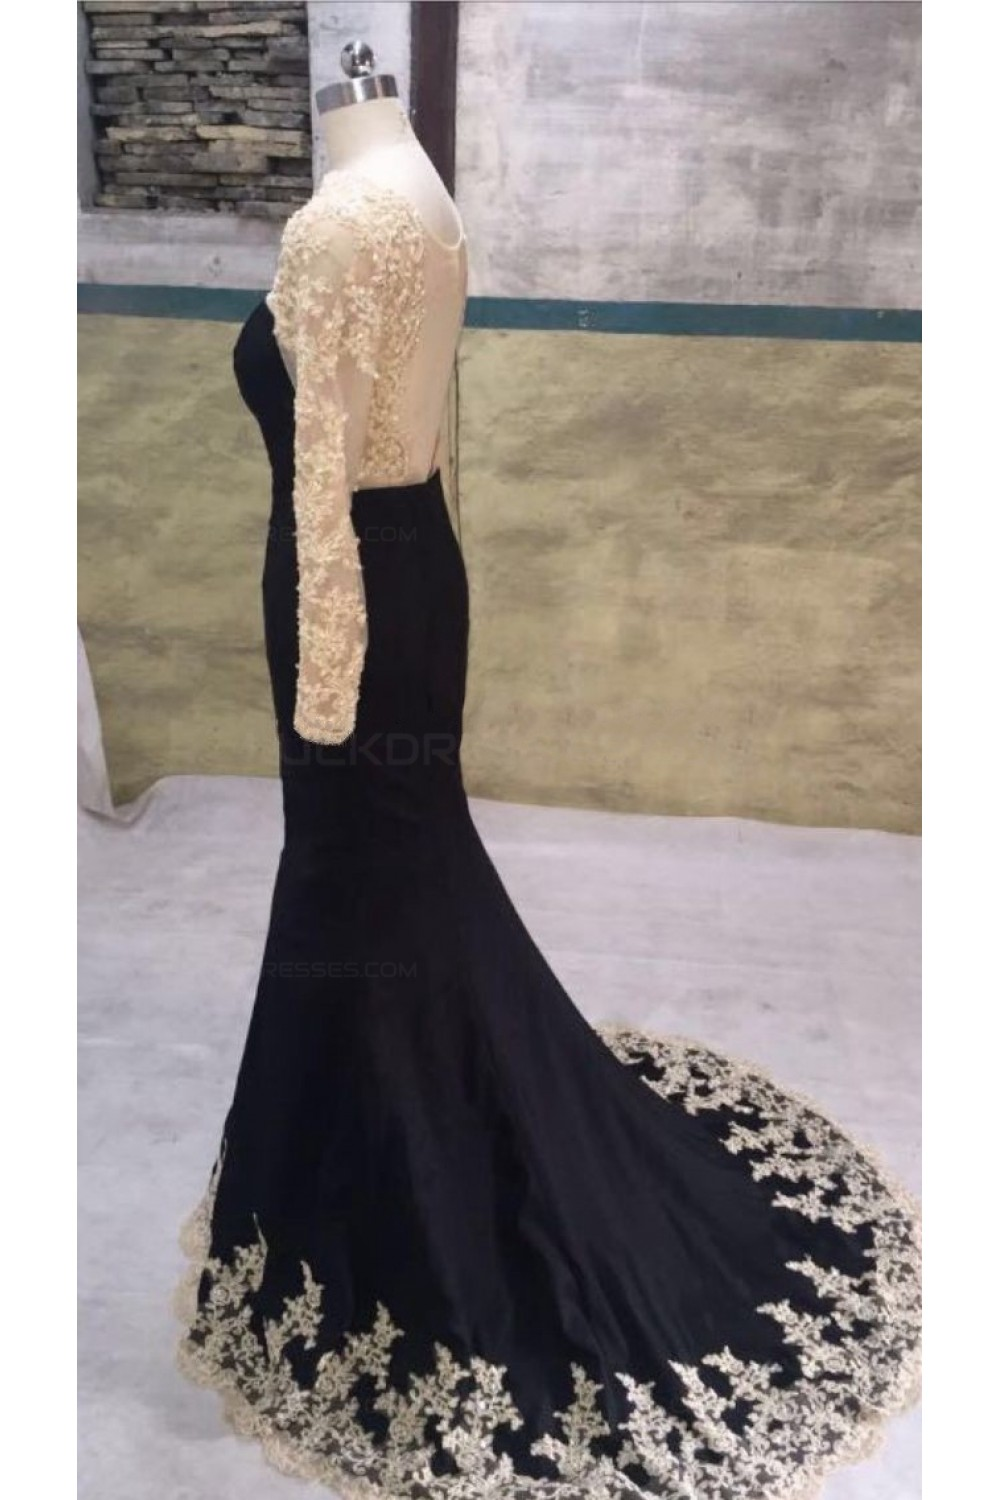 f8b7a060c26 Long Black Mermaid Gold Lace Appliques Long Sleeves Prom Dresses Party  Evening Gowns 3020405